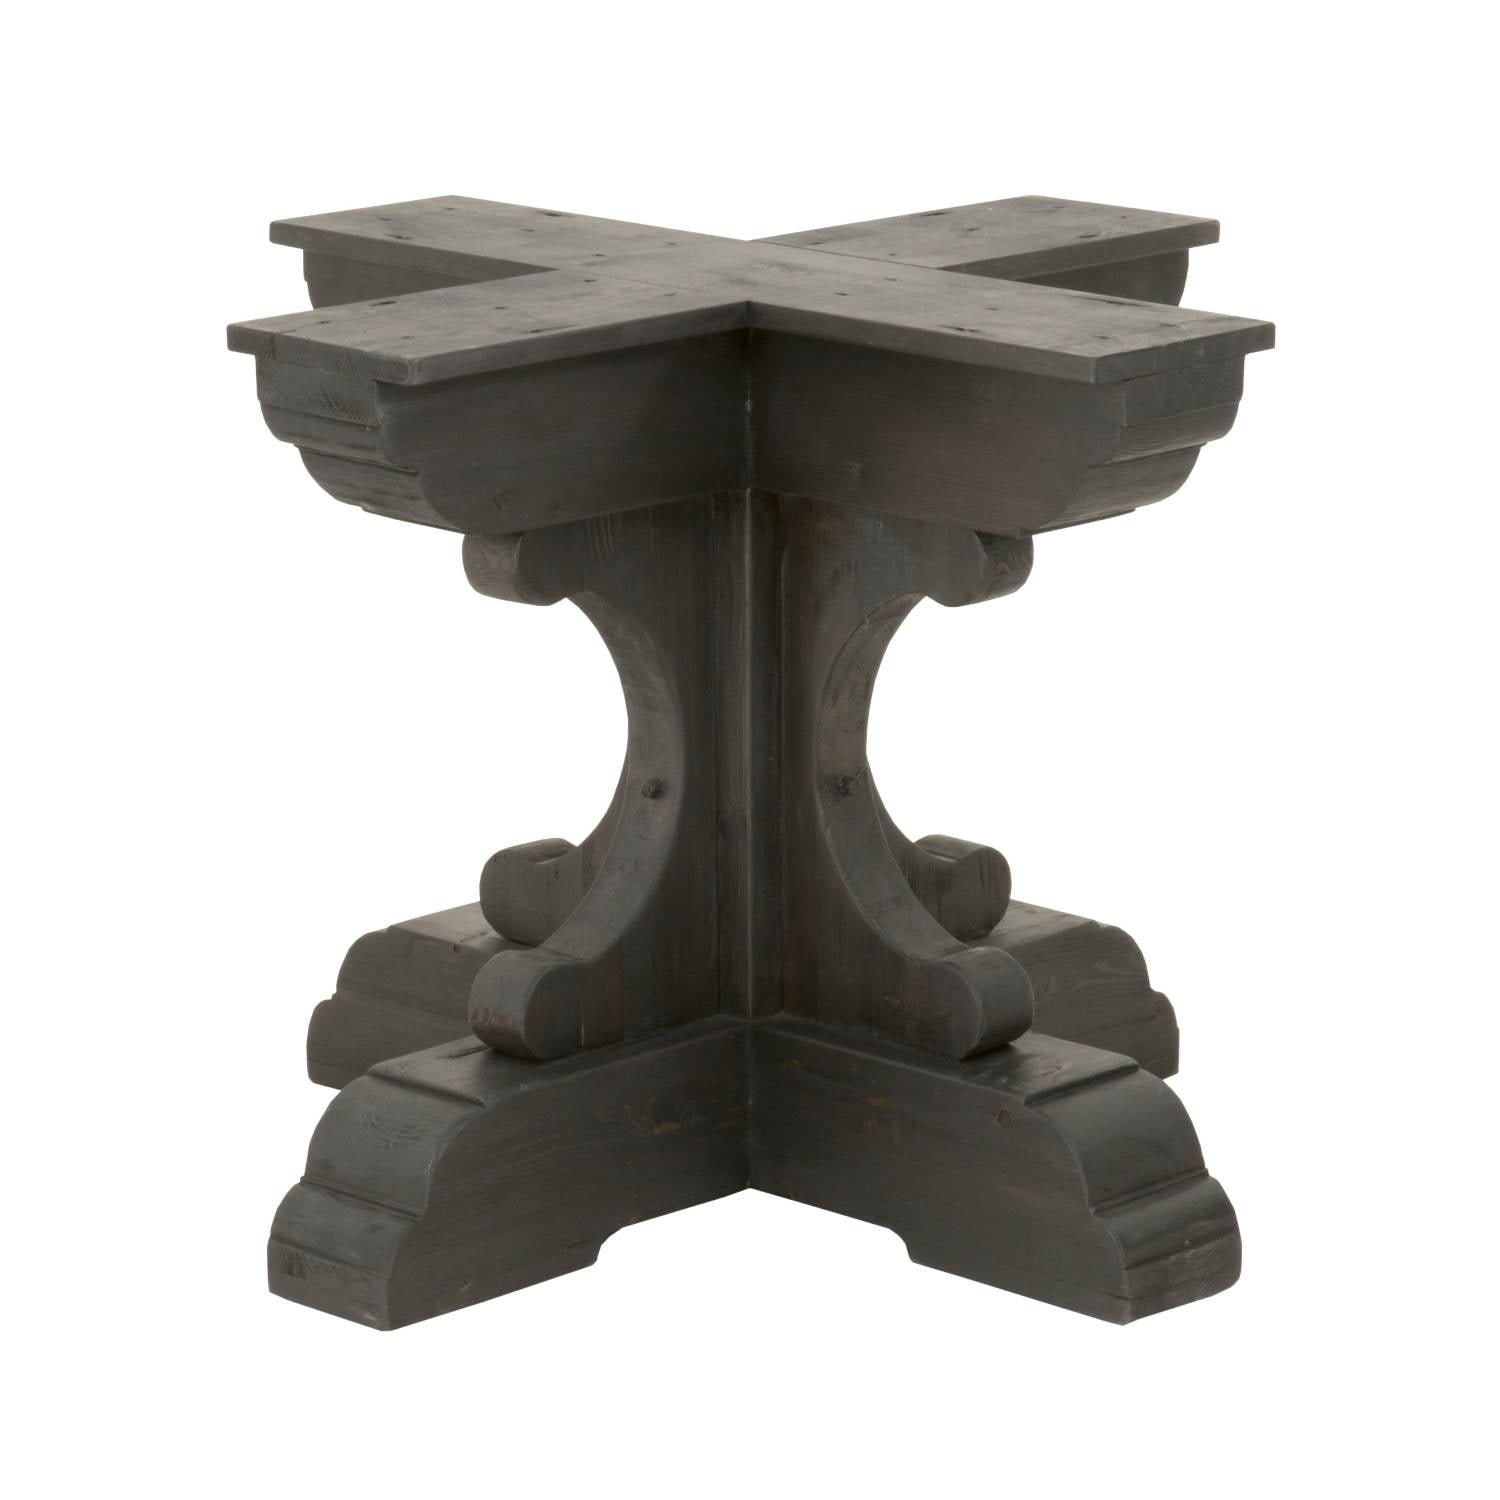 Orient Express Furniture Bastille Round Dining Table Base 8078 RD.BW PNE